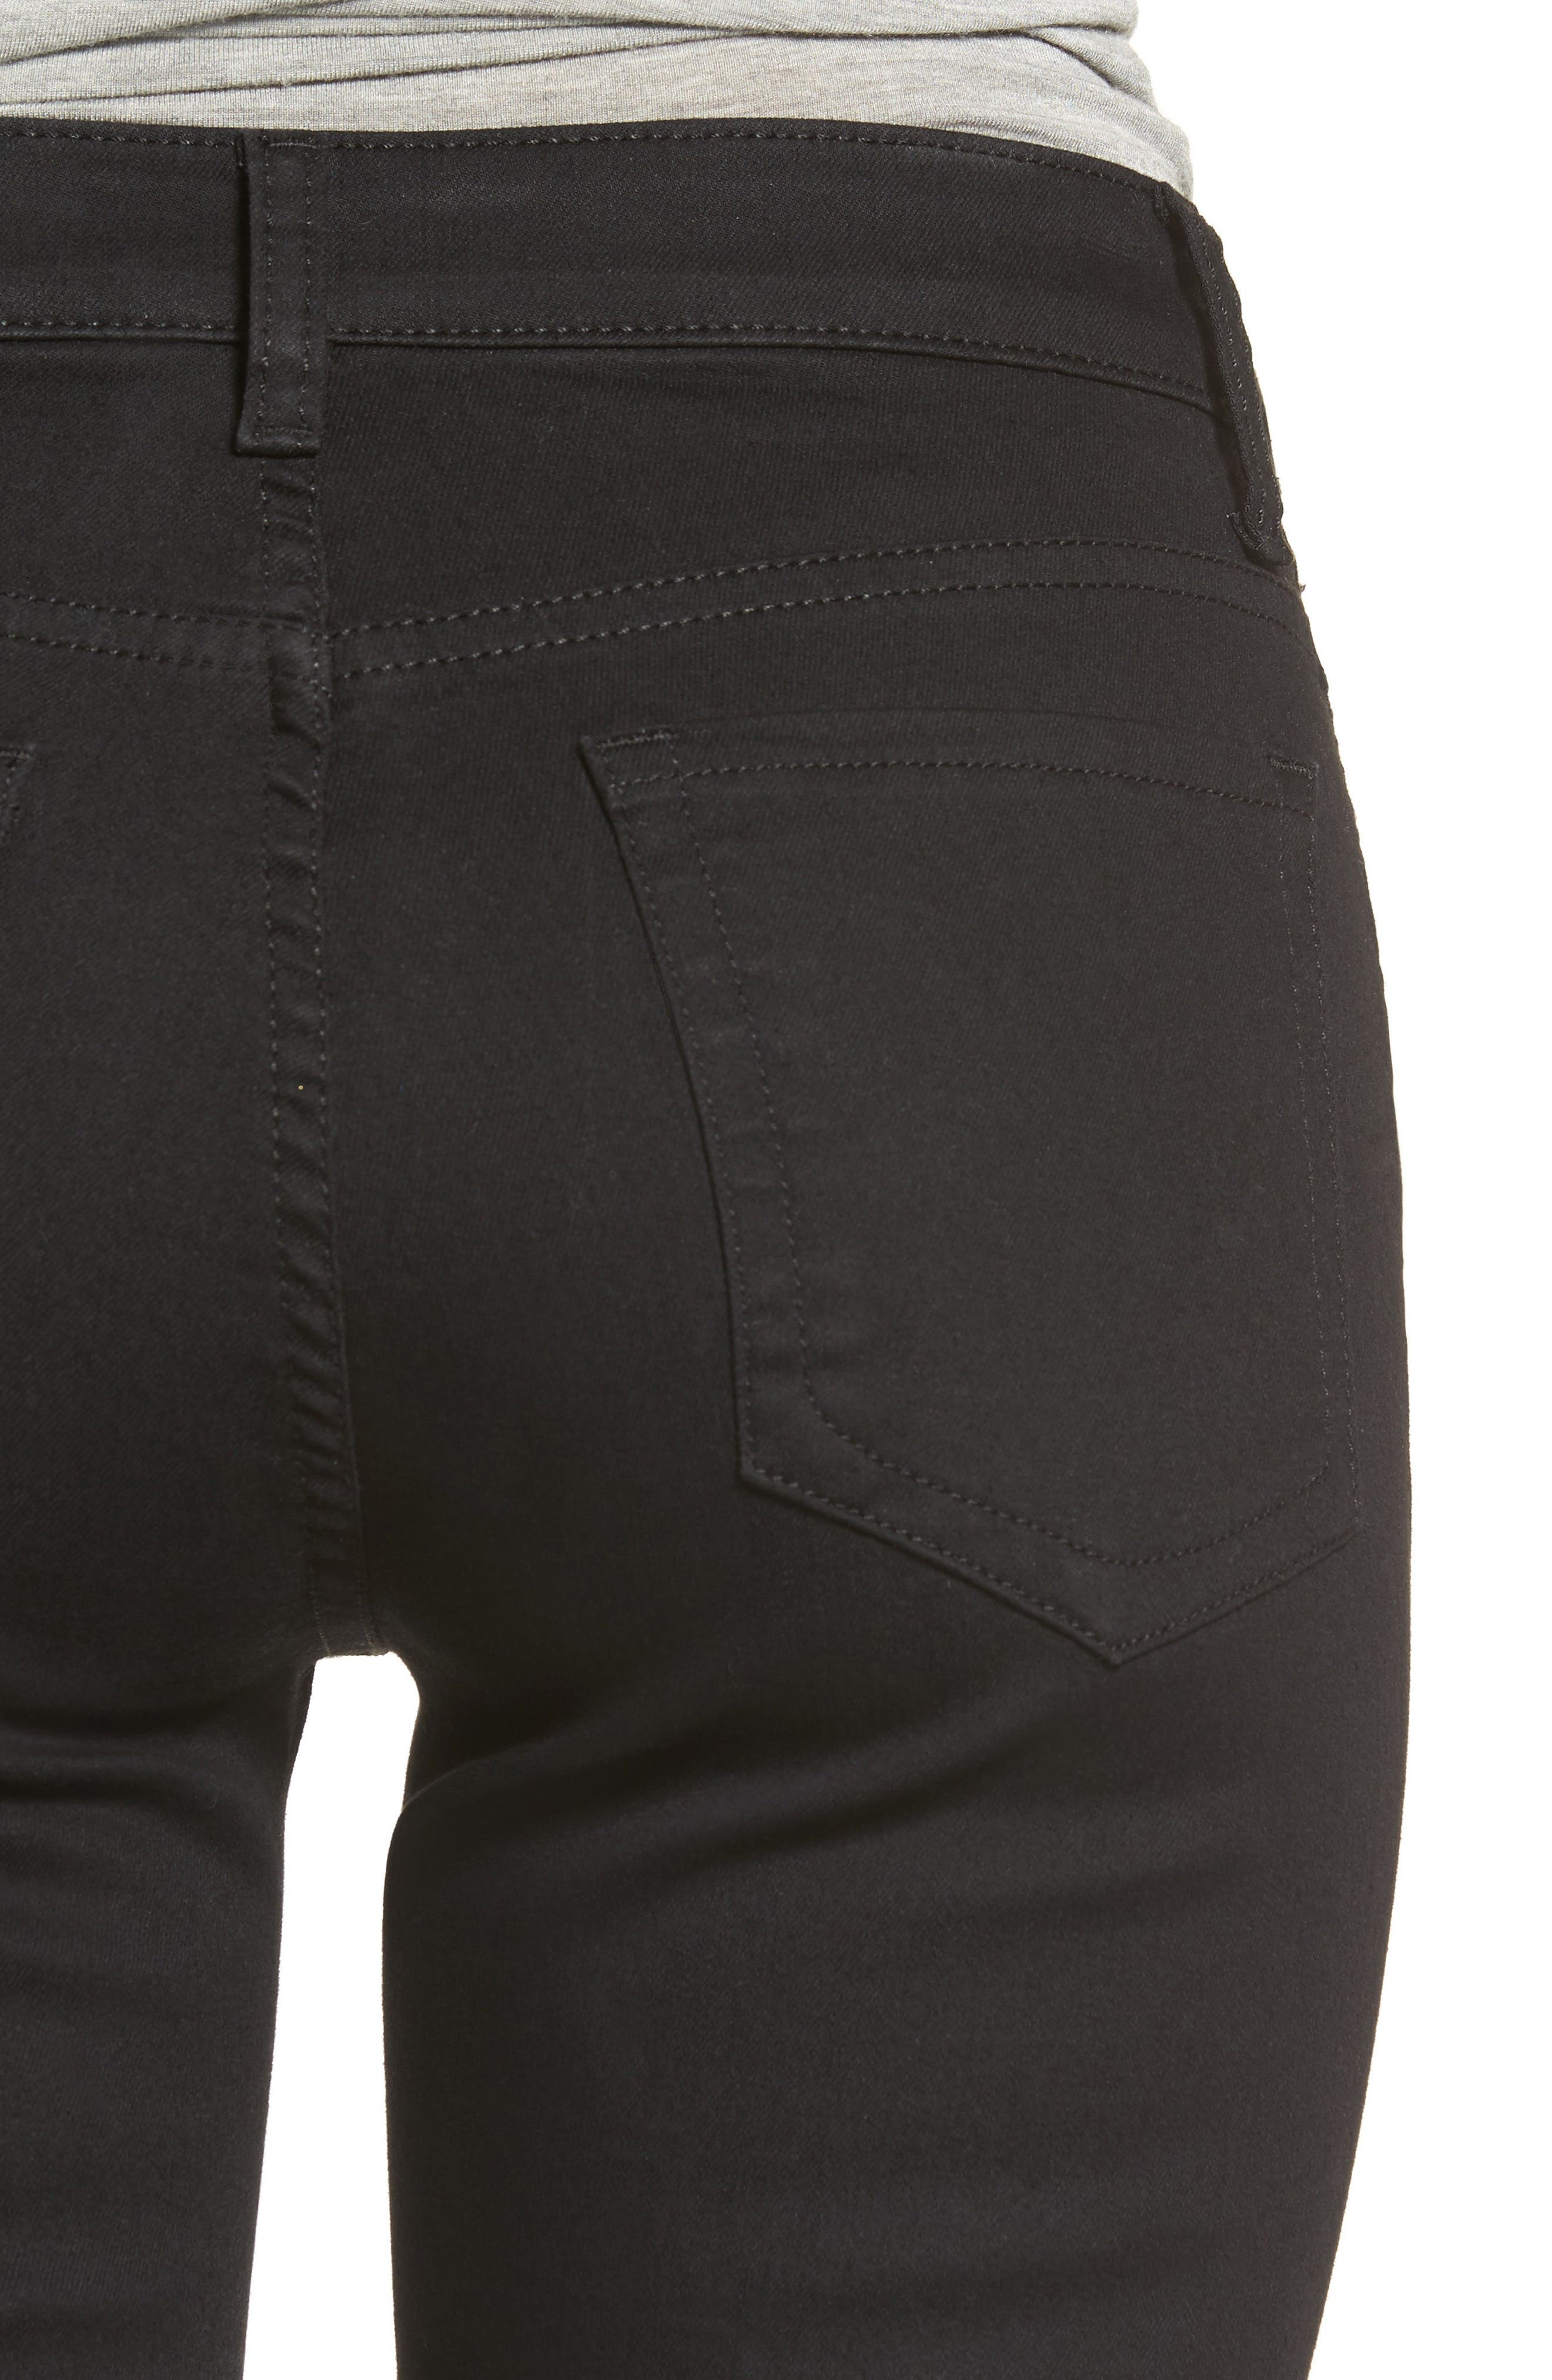 Diana Stretch Skinny Jeans,                             Alternate thumbnail 4, color,                             002